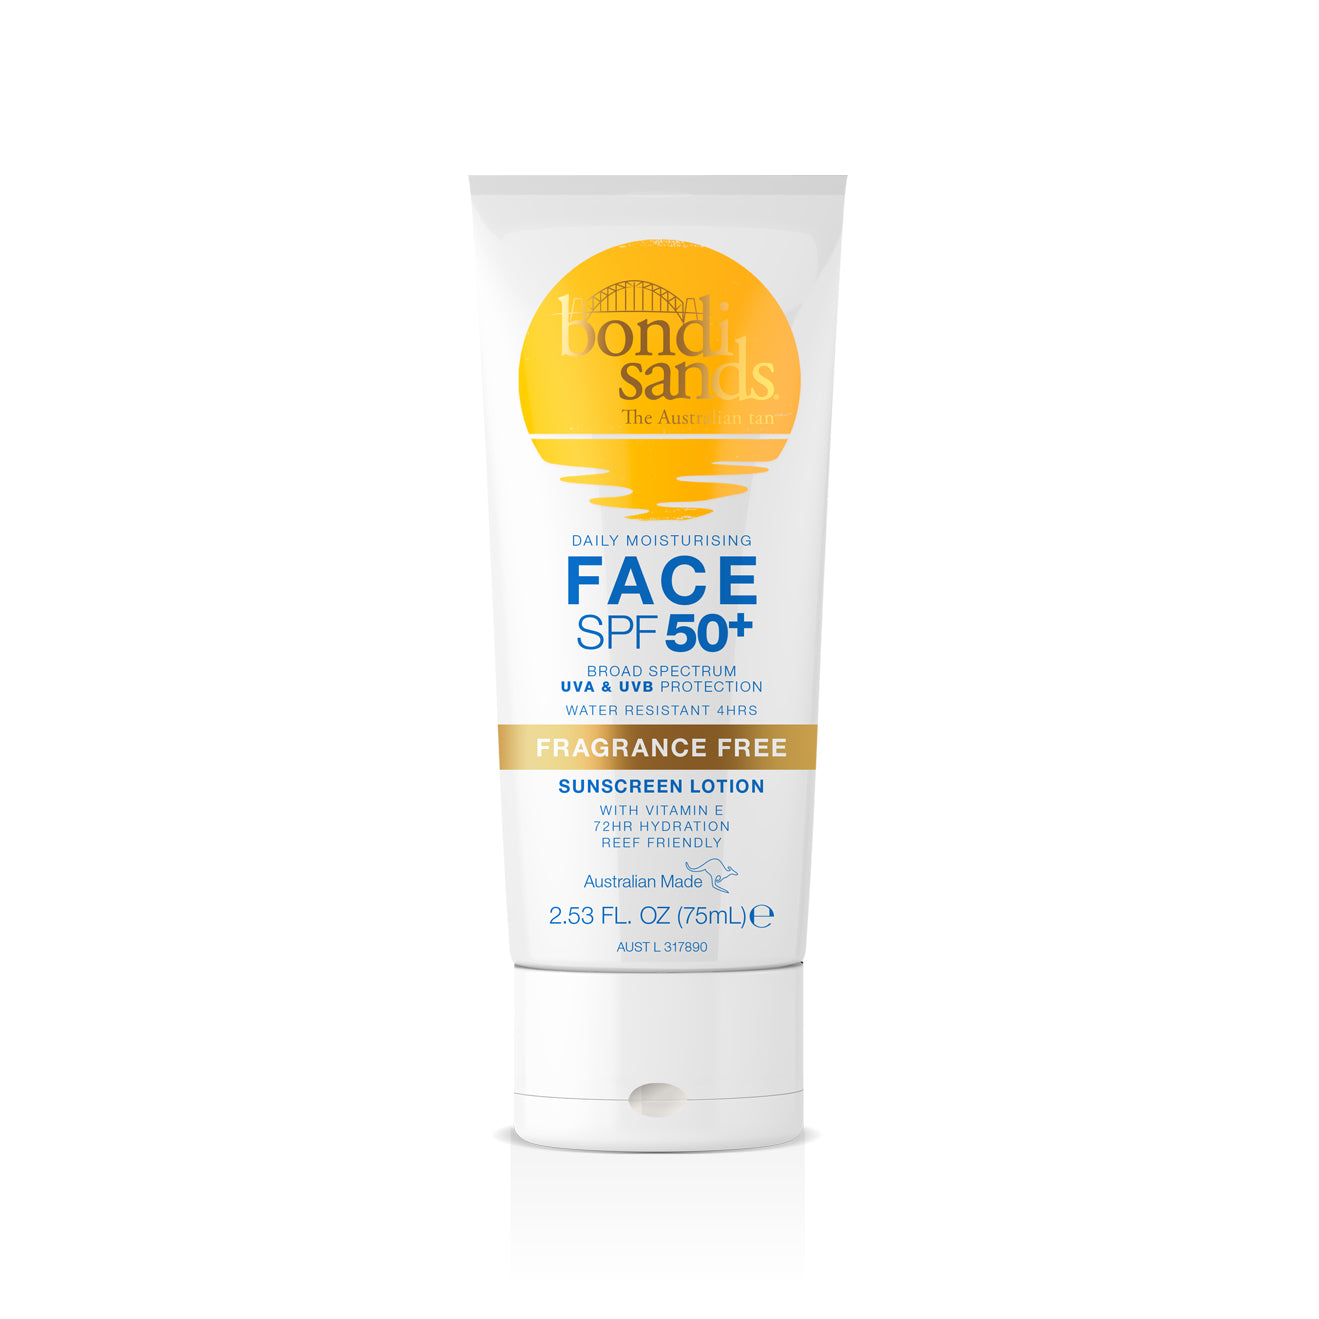 Bondi Sands SPF 50+ FACE SUNSCREEN LOTION